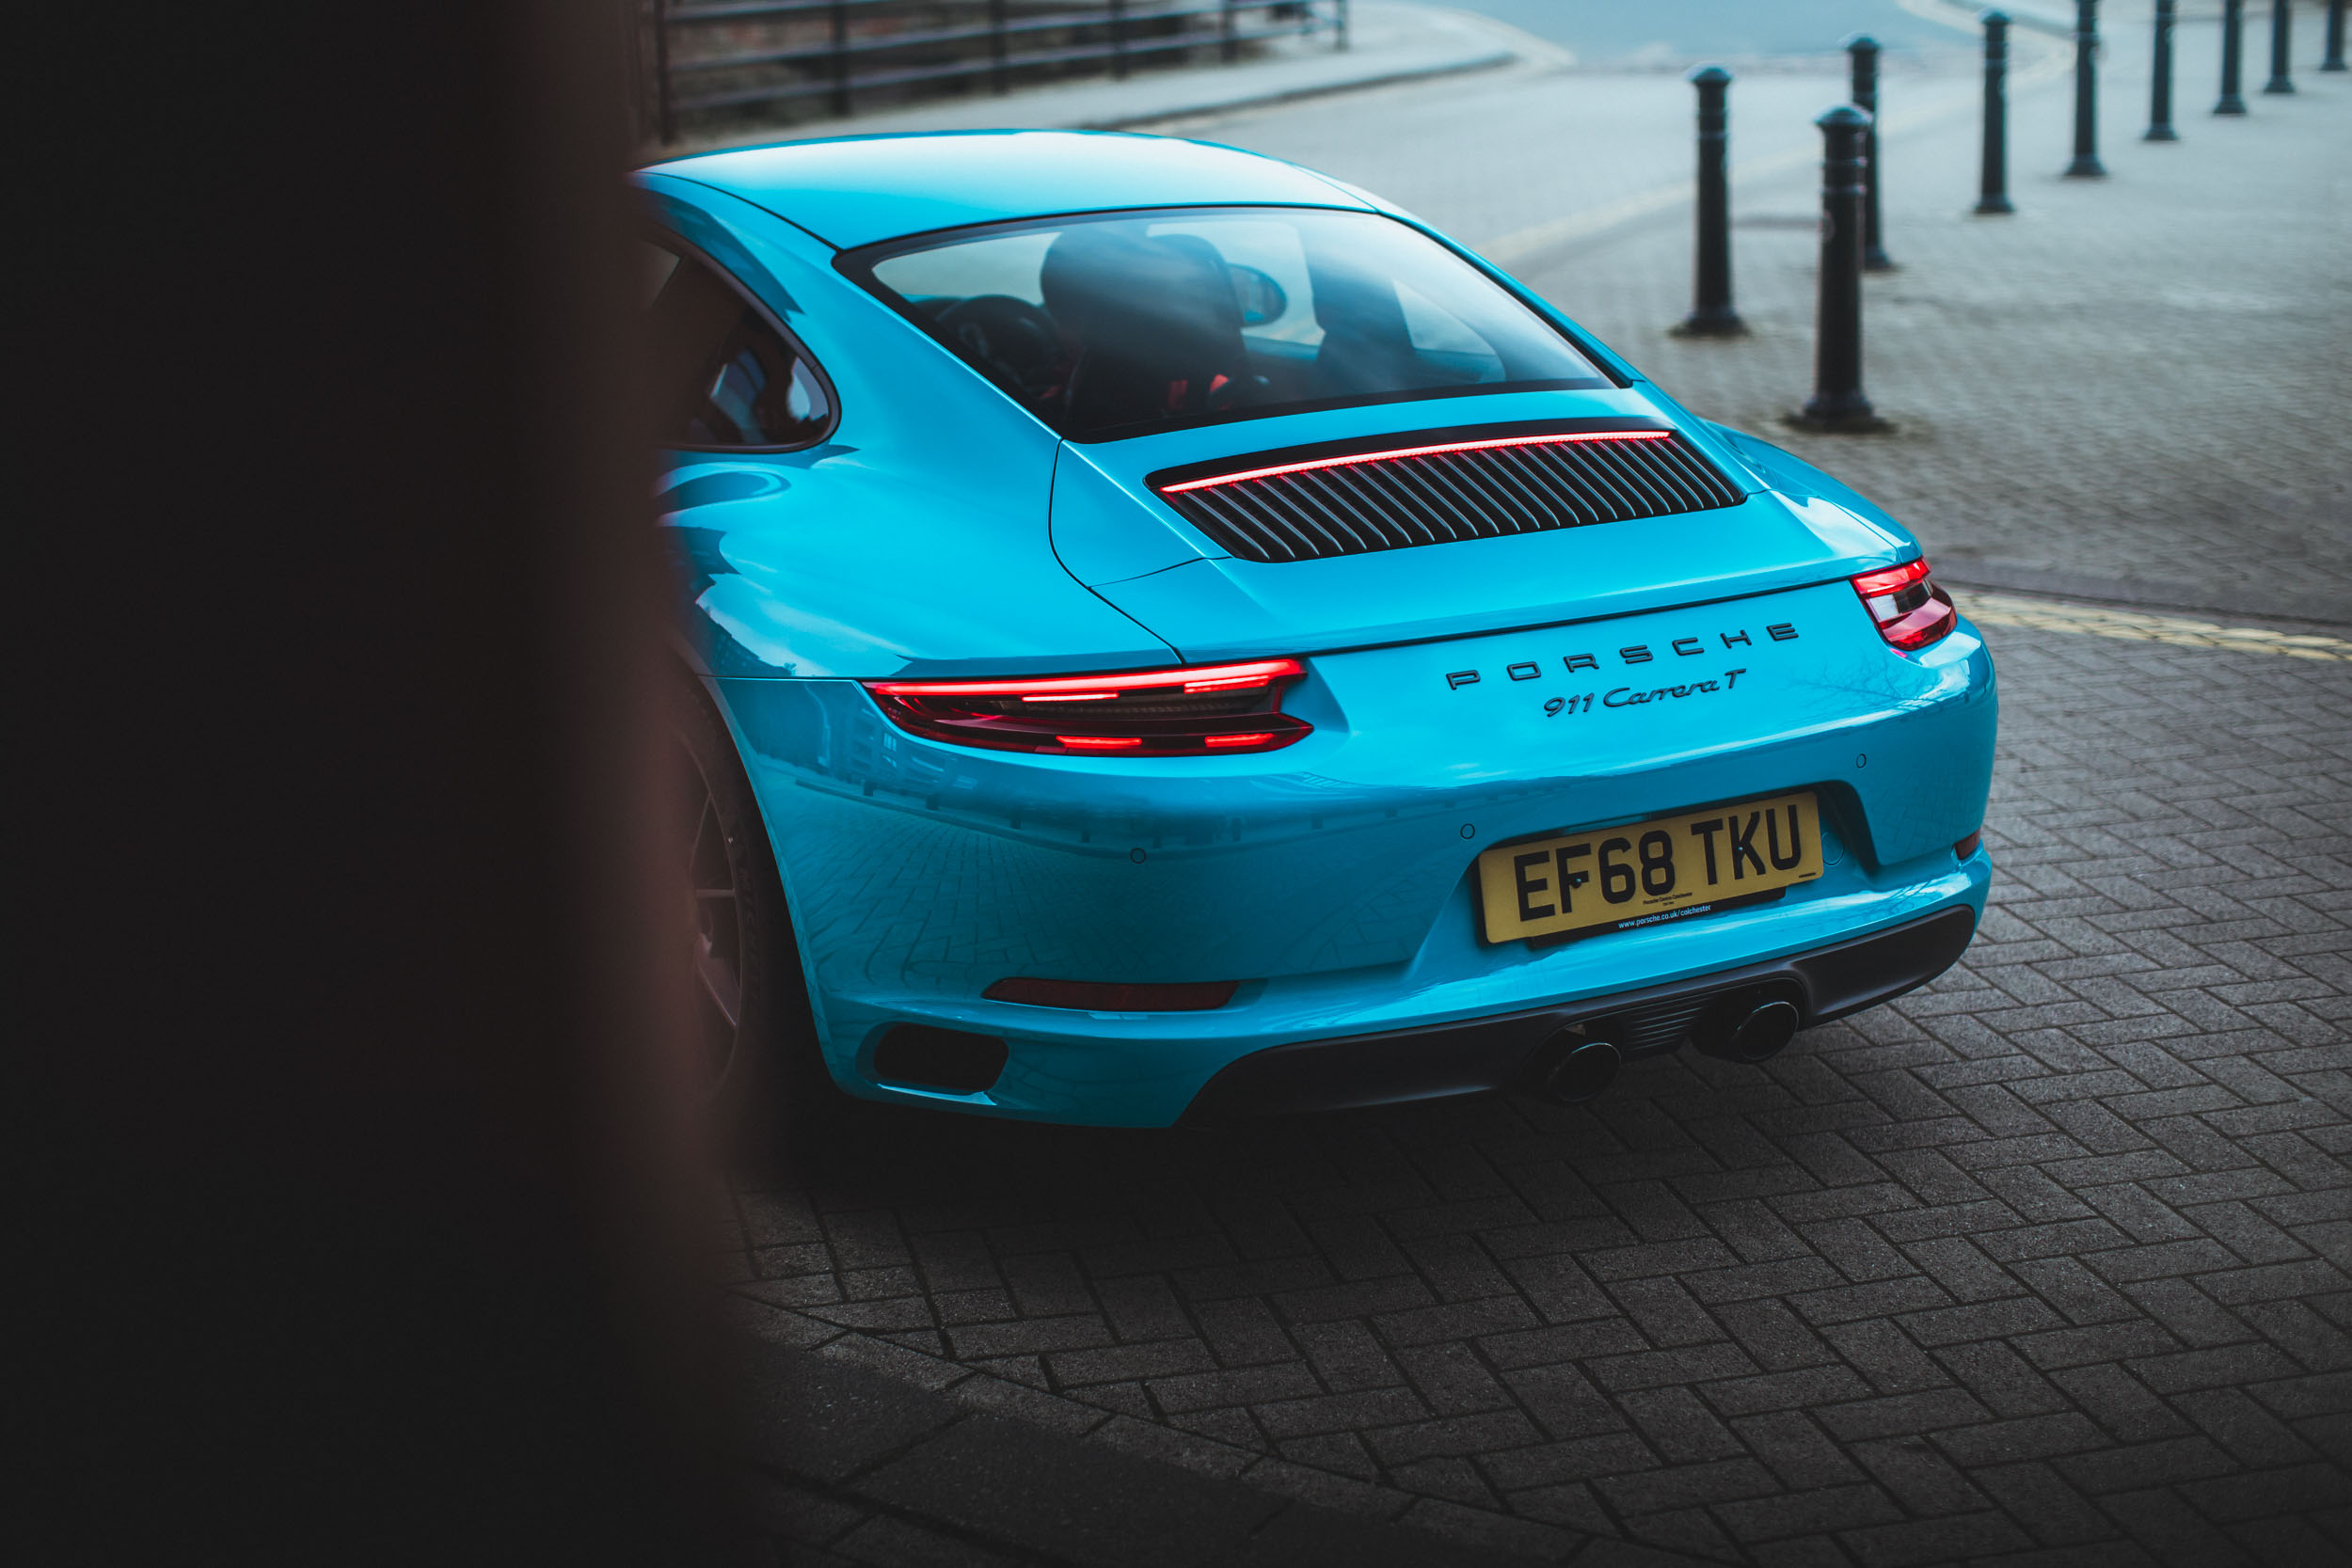 Porsche_911TBlue_April19_ByTomKahler_Lowres (6 of 20).jpg